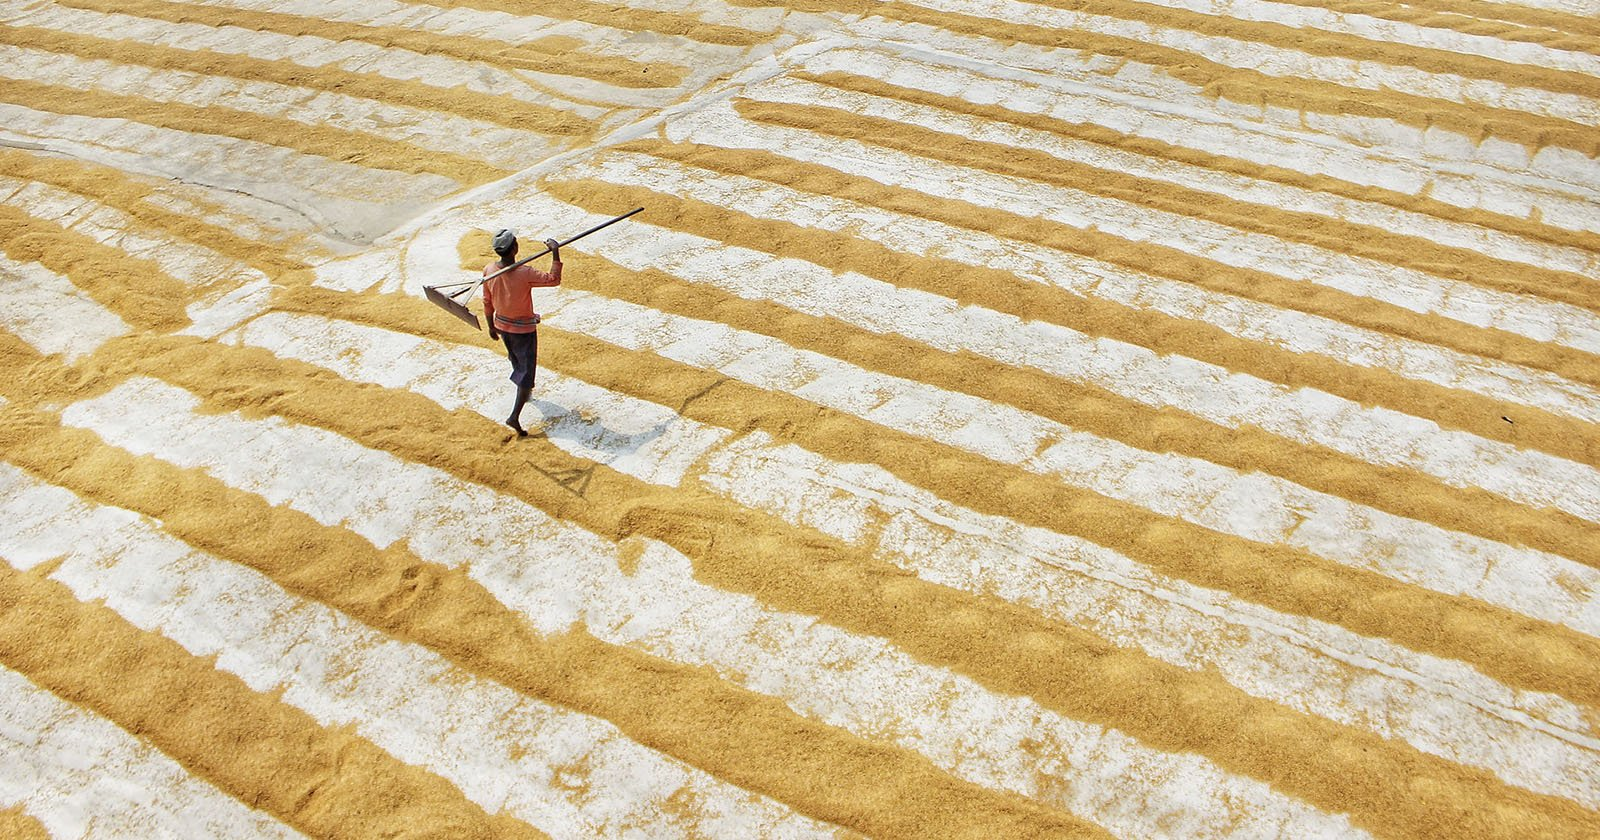 Beautiful Photos of Rice Fields in India Perfectly Leverage Composition